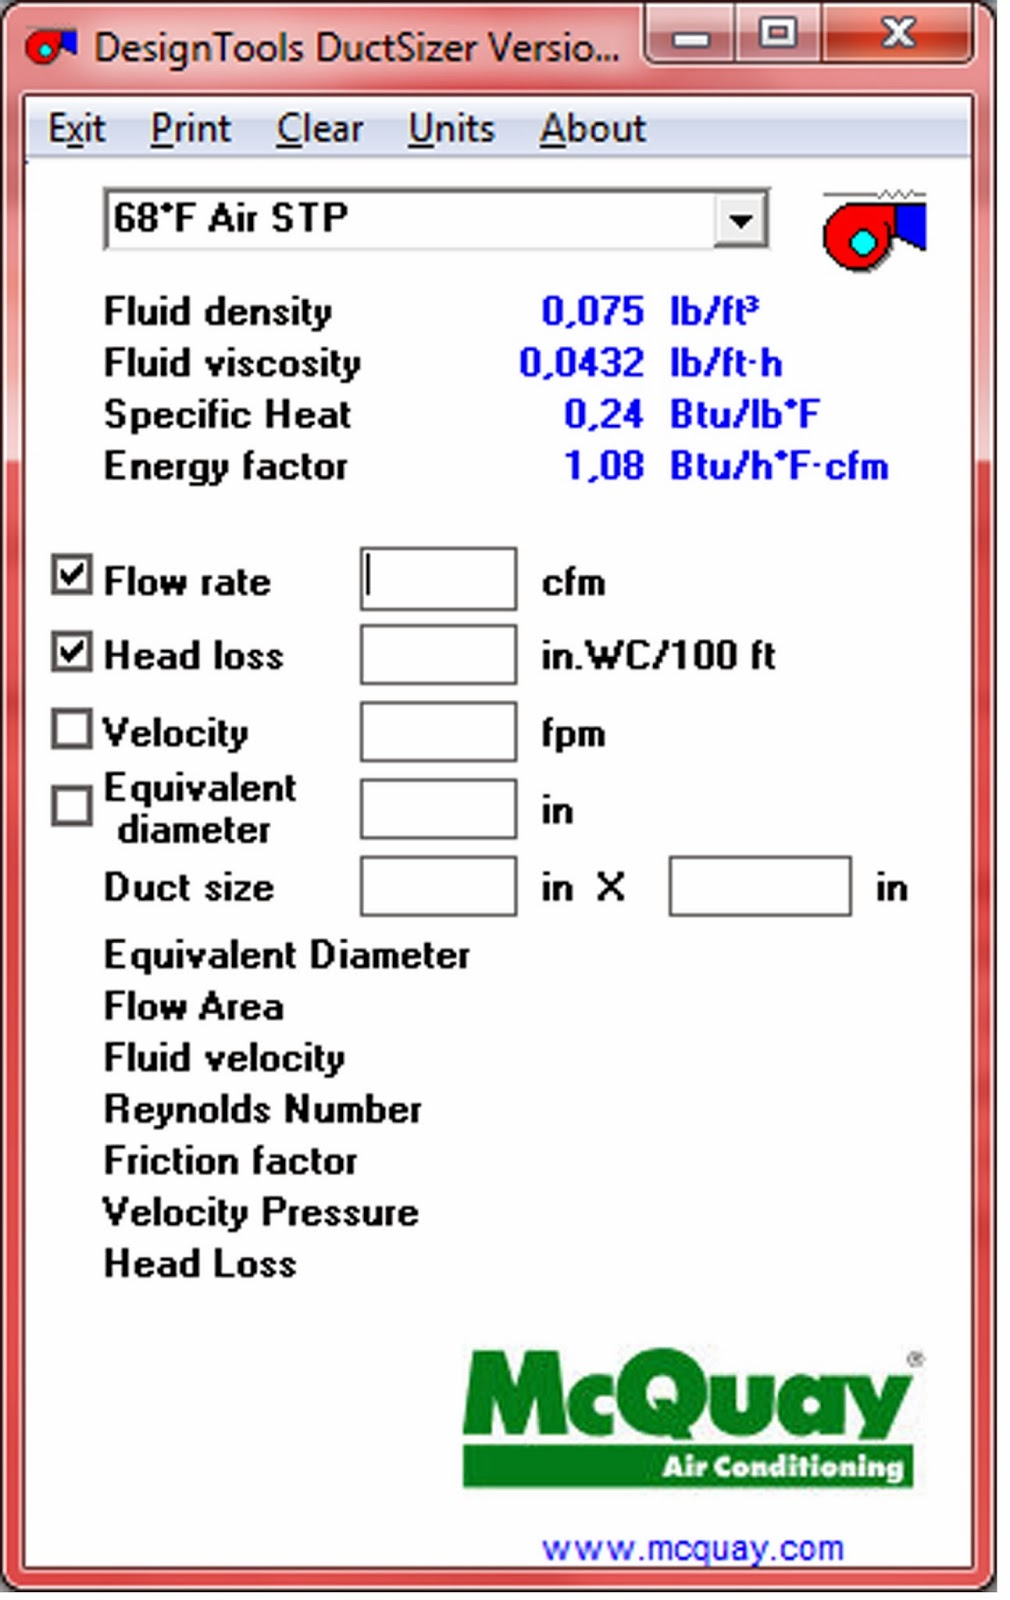 mcquay duct sizer software